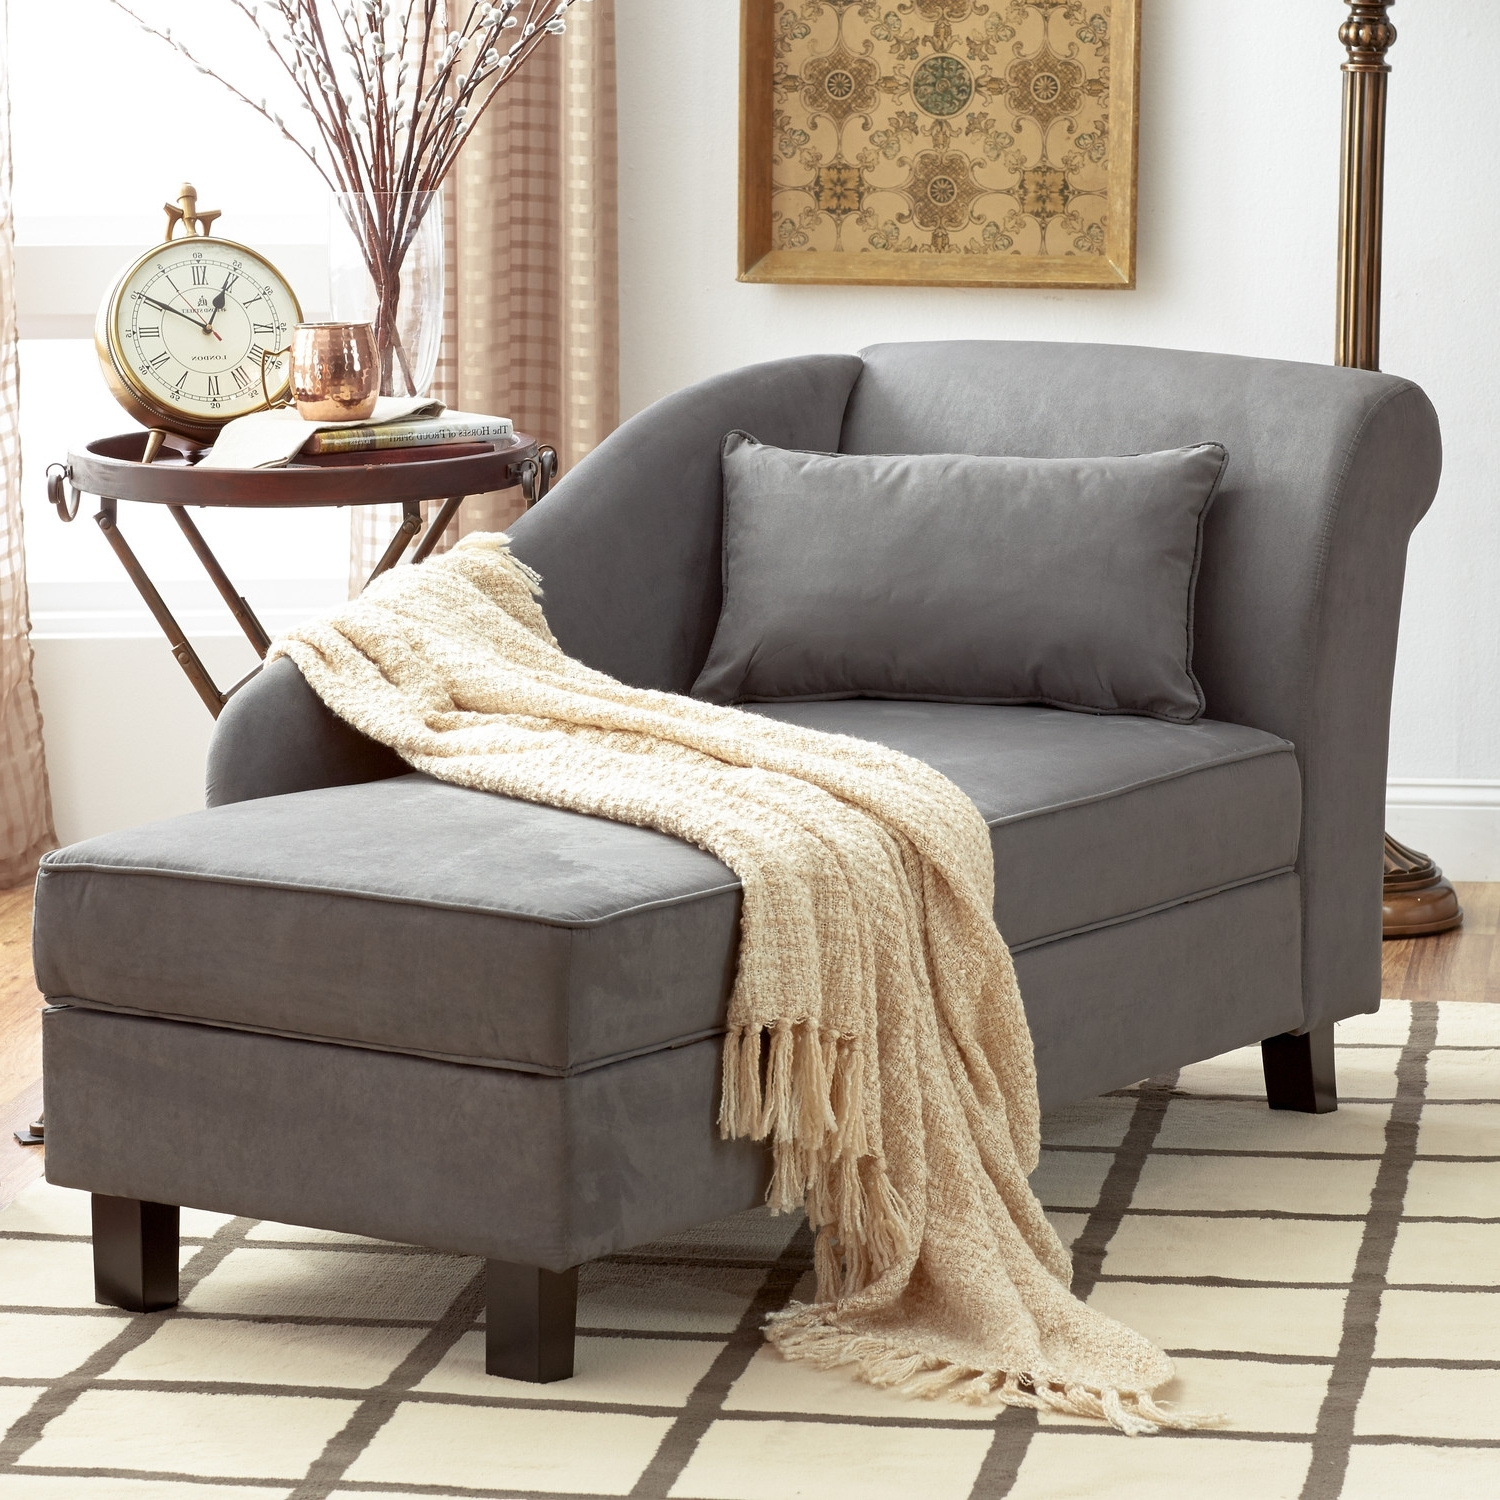 Well Liked Small Chaise Lounge Chairs For Bedroom With Regard To Small Chaise Lounge Chair For Bedroom • Lounge Chairs Ideas (View 3 of 15)